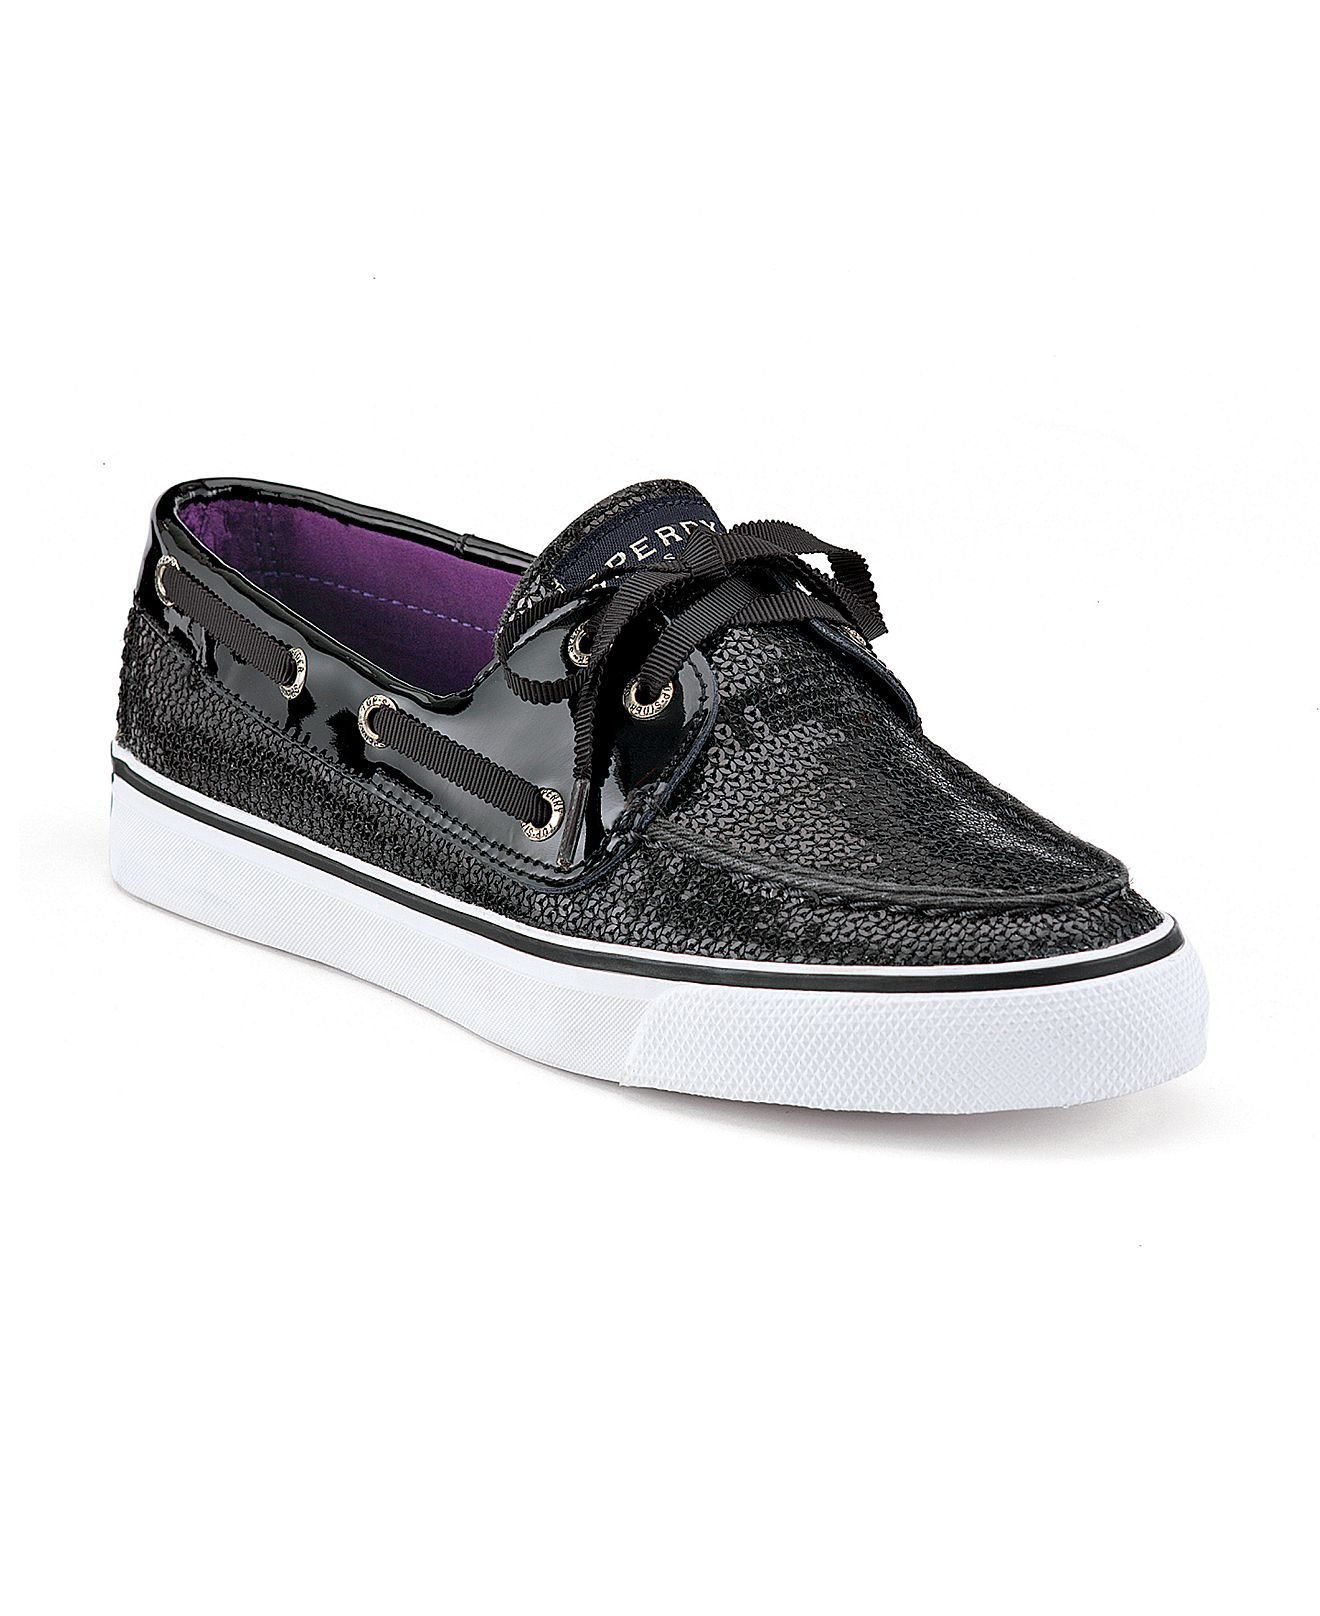 3798b0e8a95 Sperry Top-Sider Women s Shoes